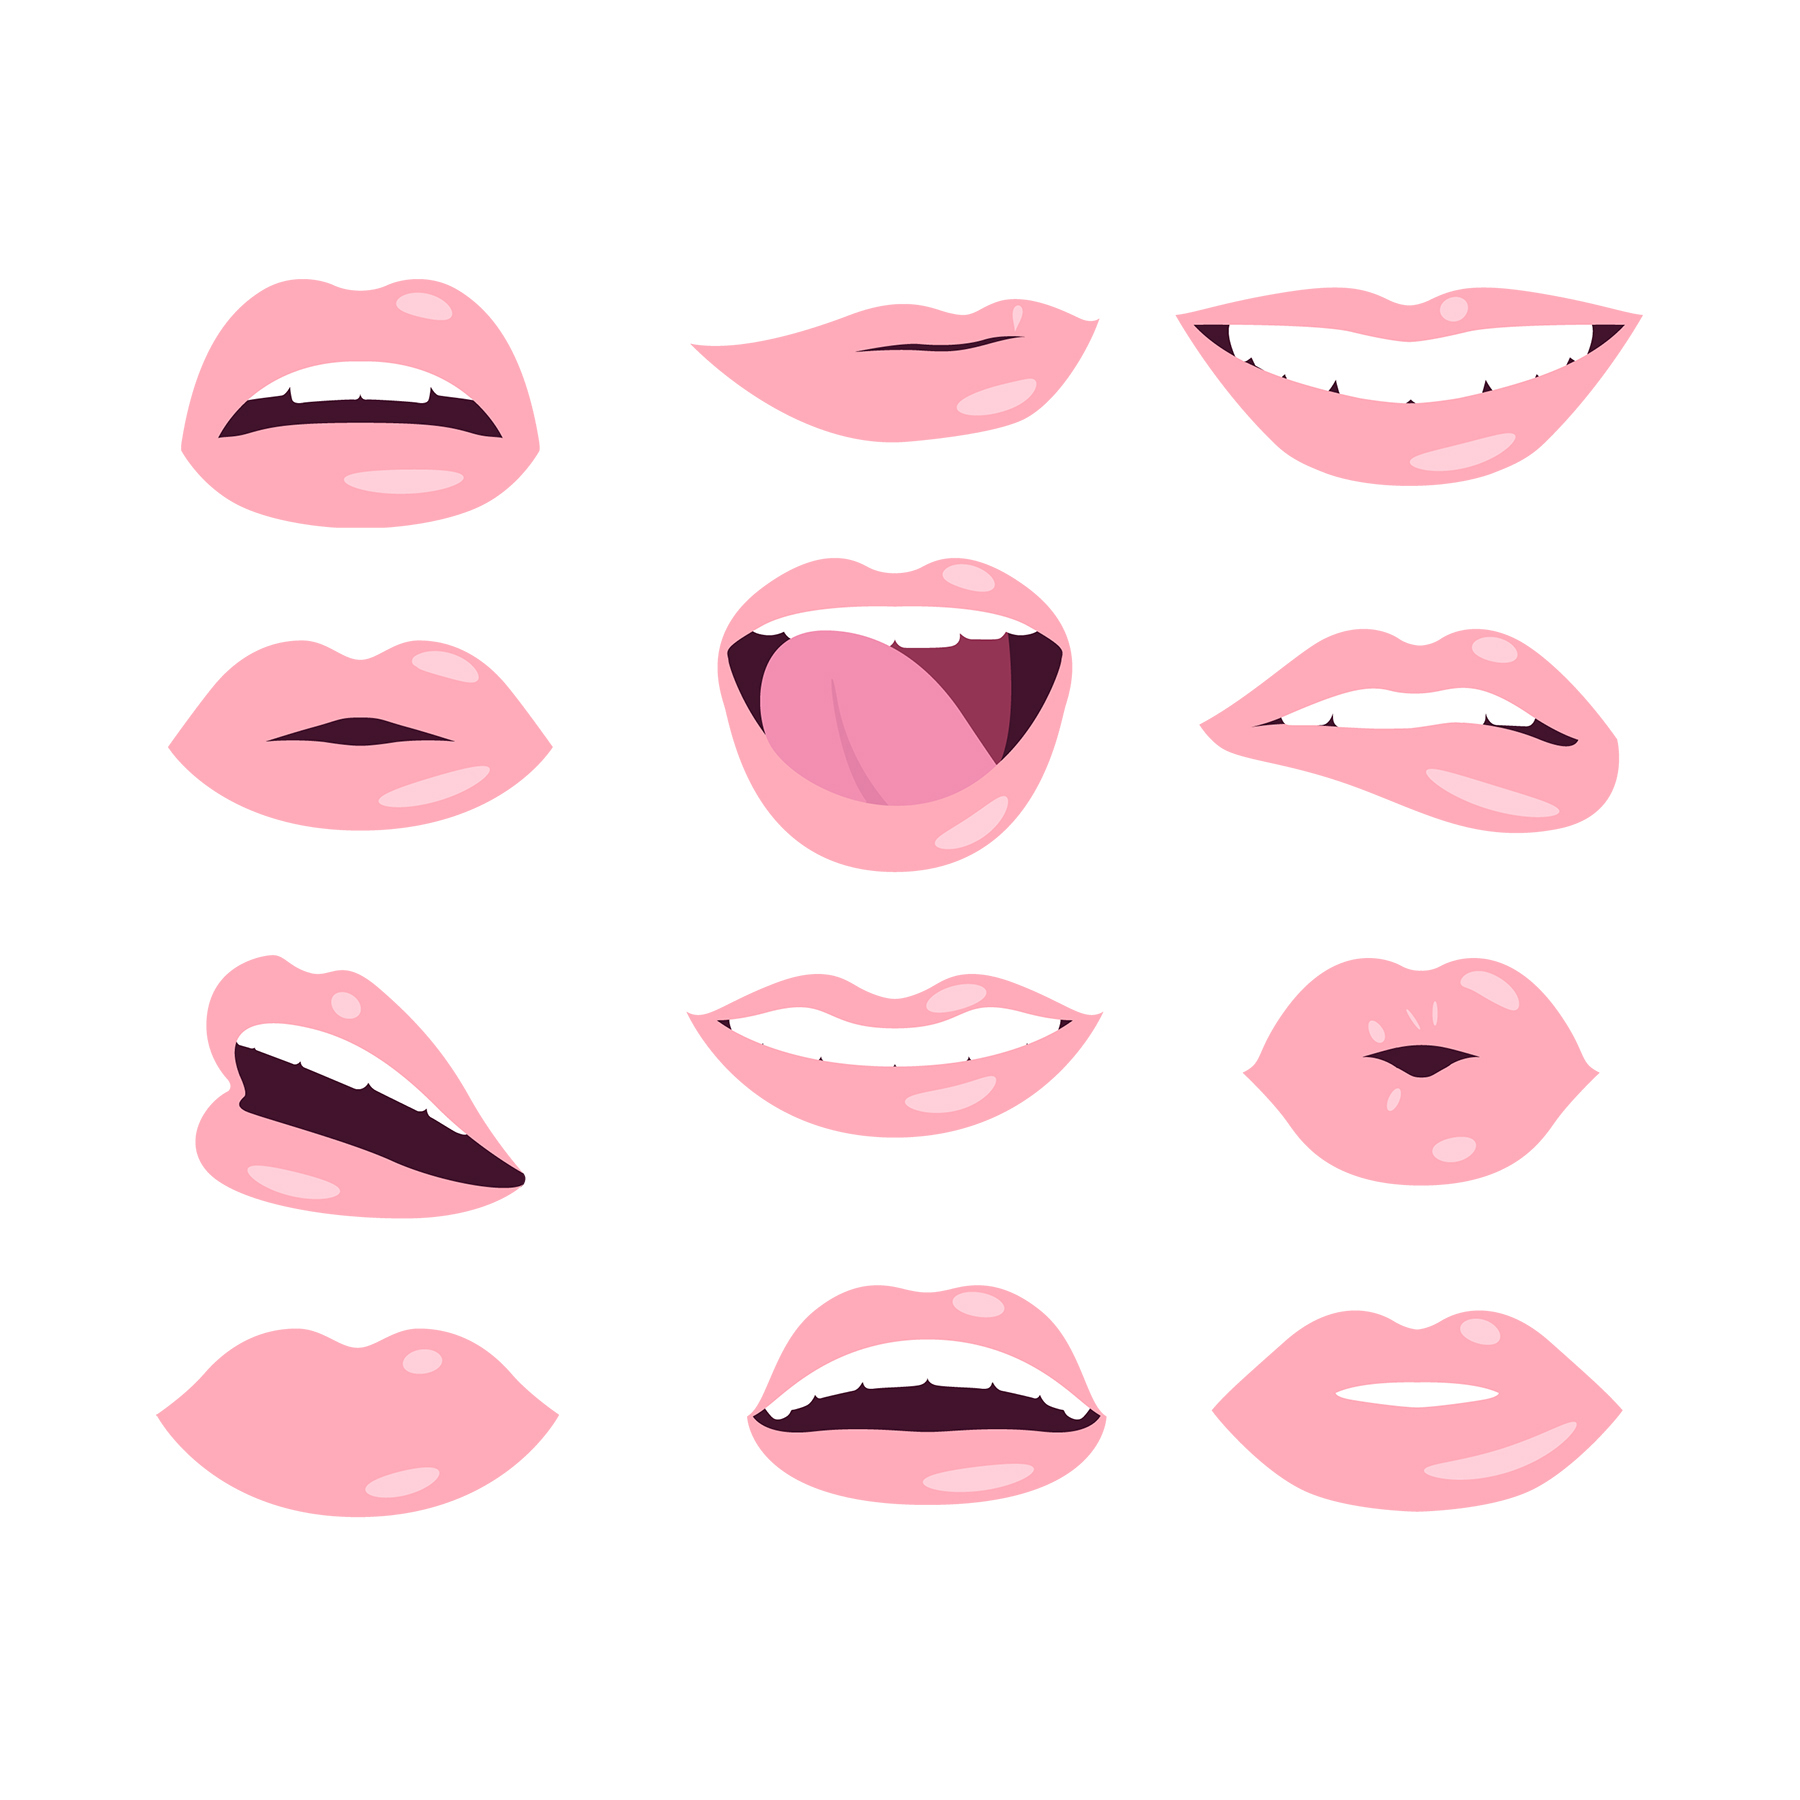 Illustration: lots of pink lips